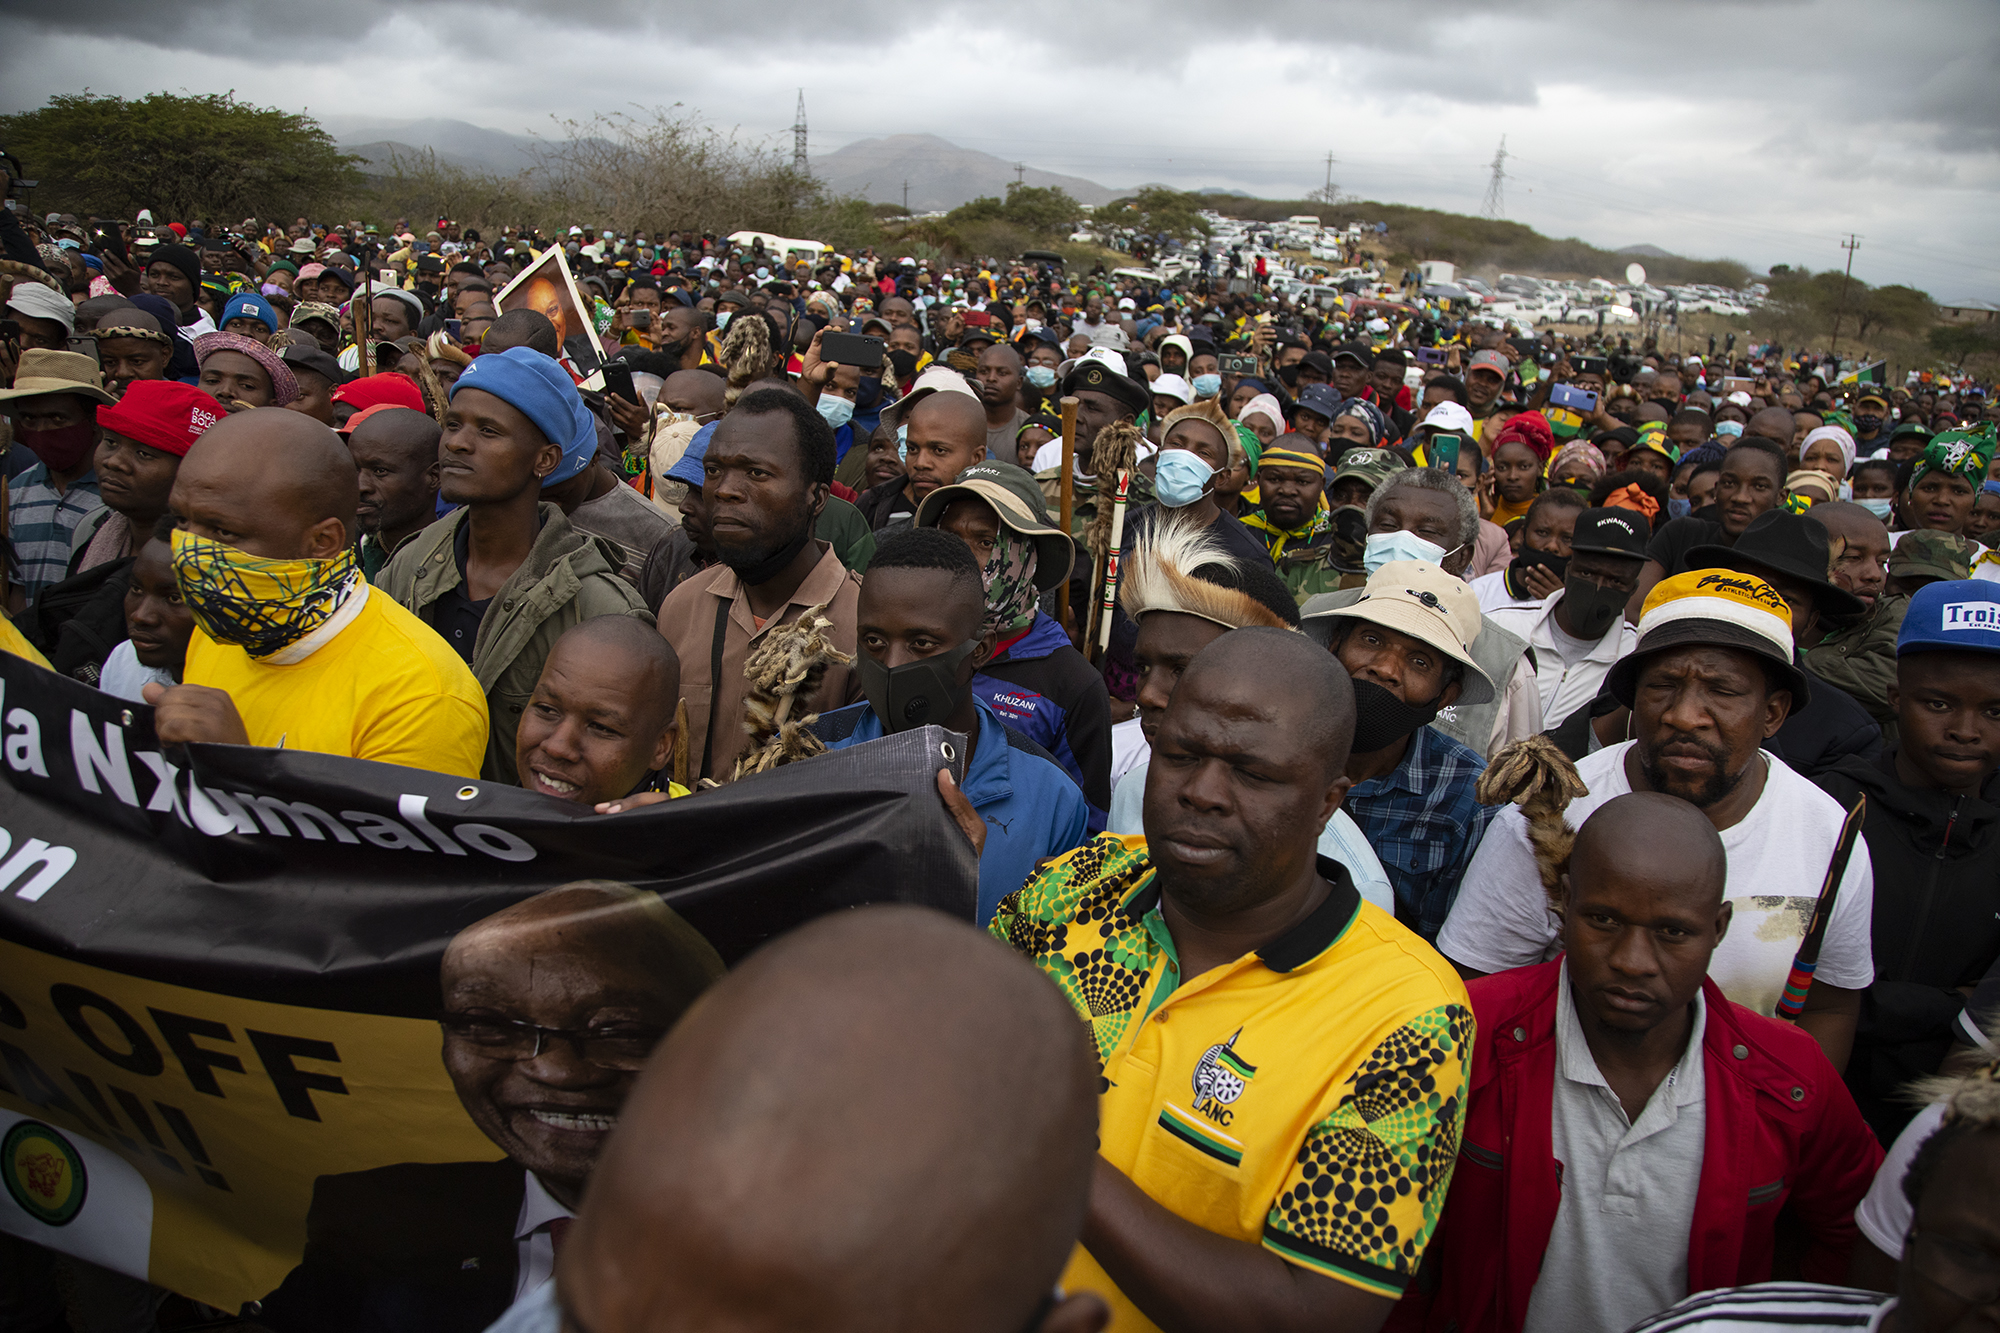 Zuma tells his supporters he's a prisoner of conscien...